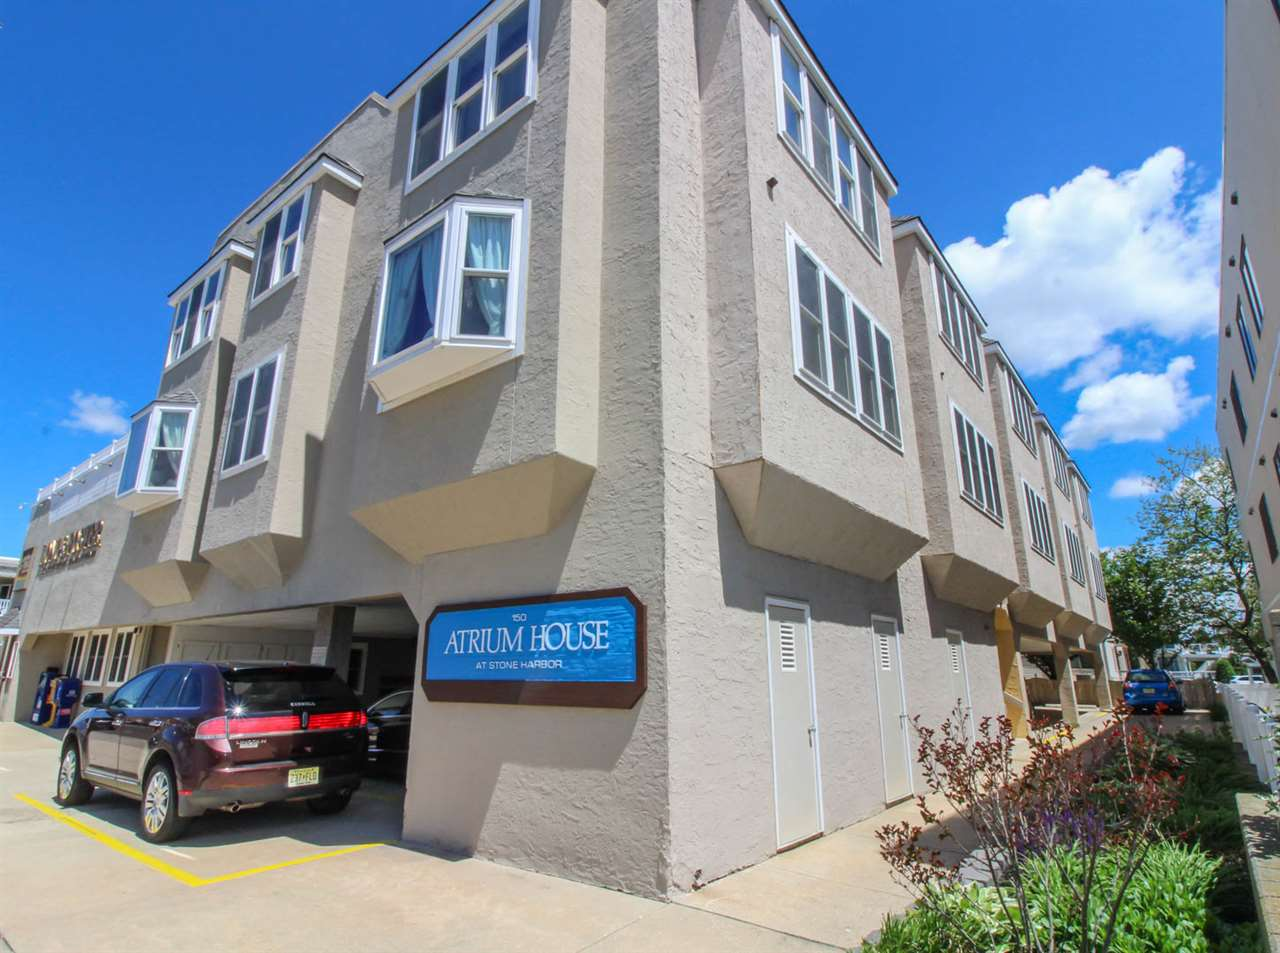 150, Unit 3 96th, Stone Harbor